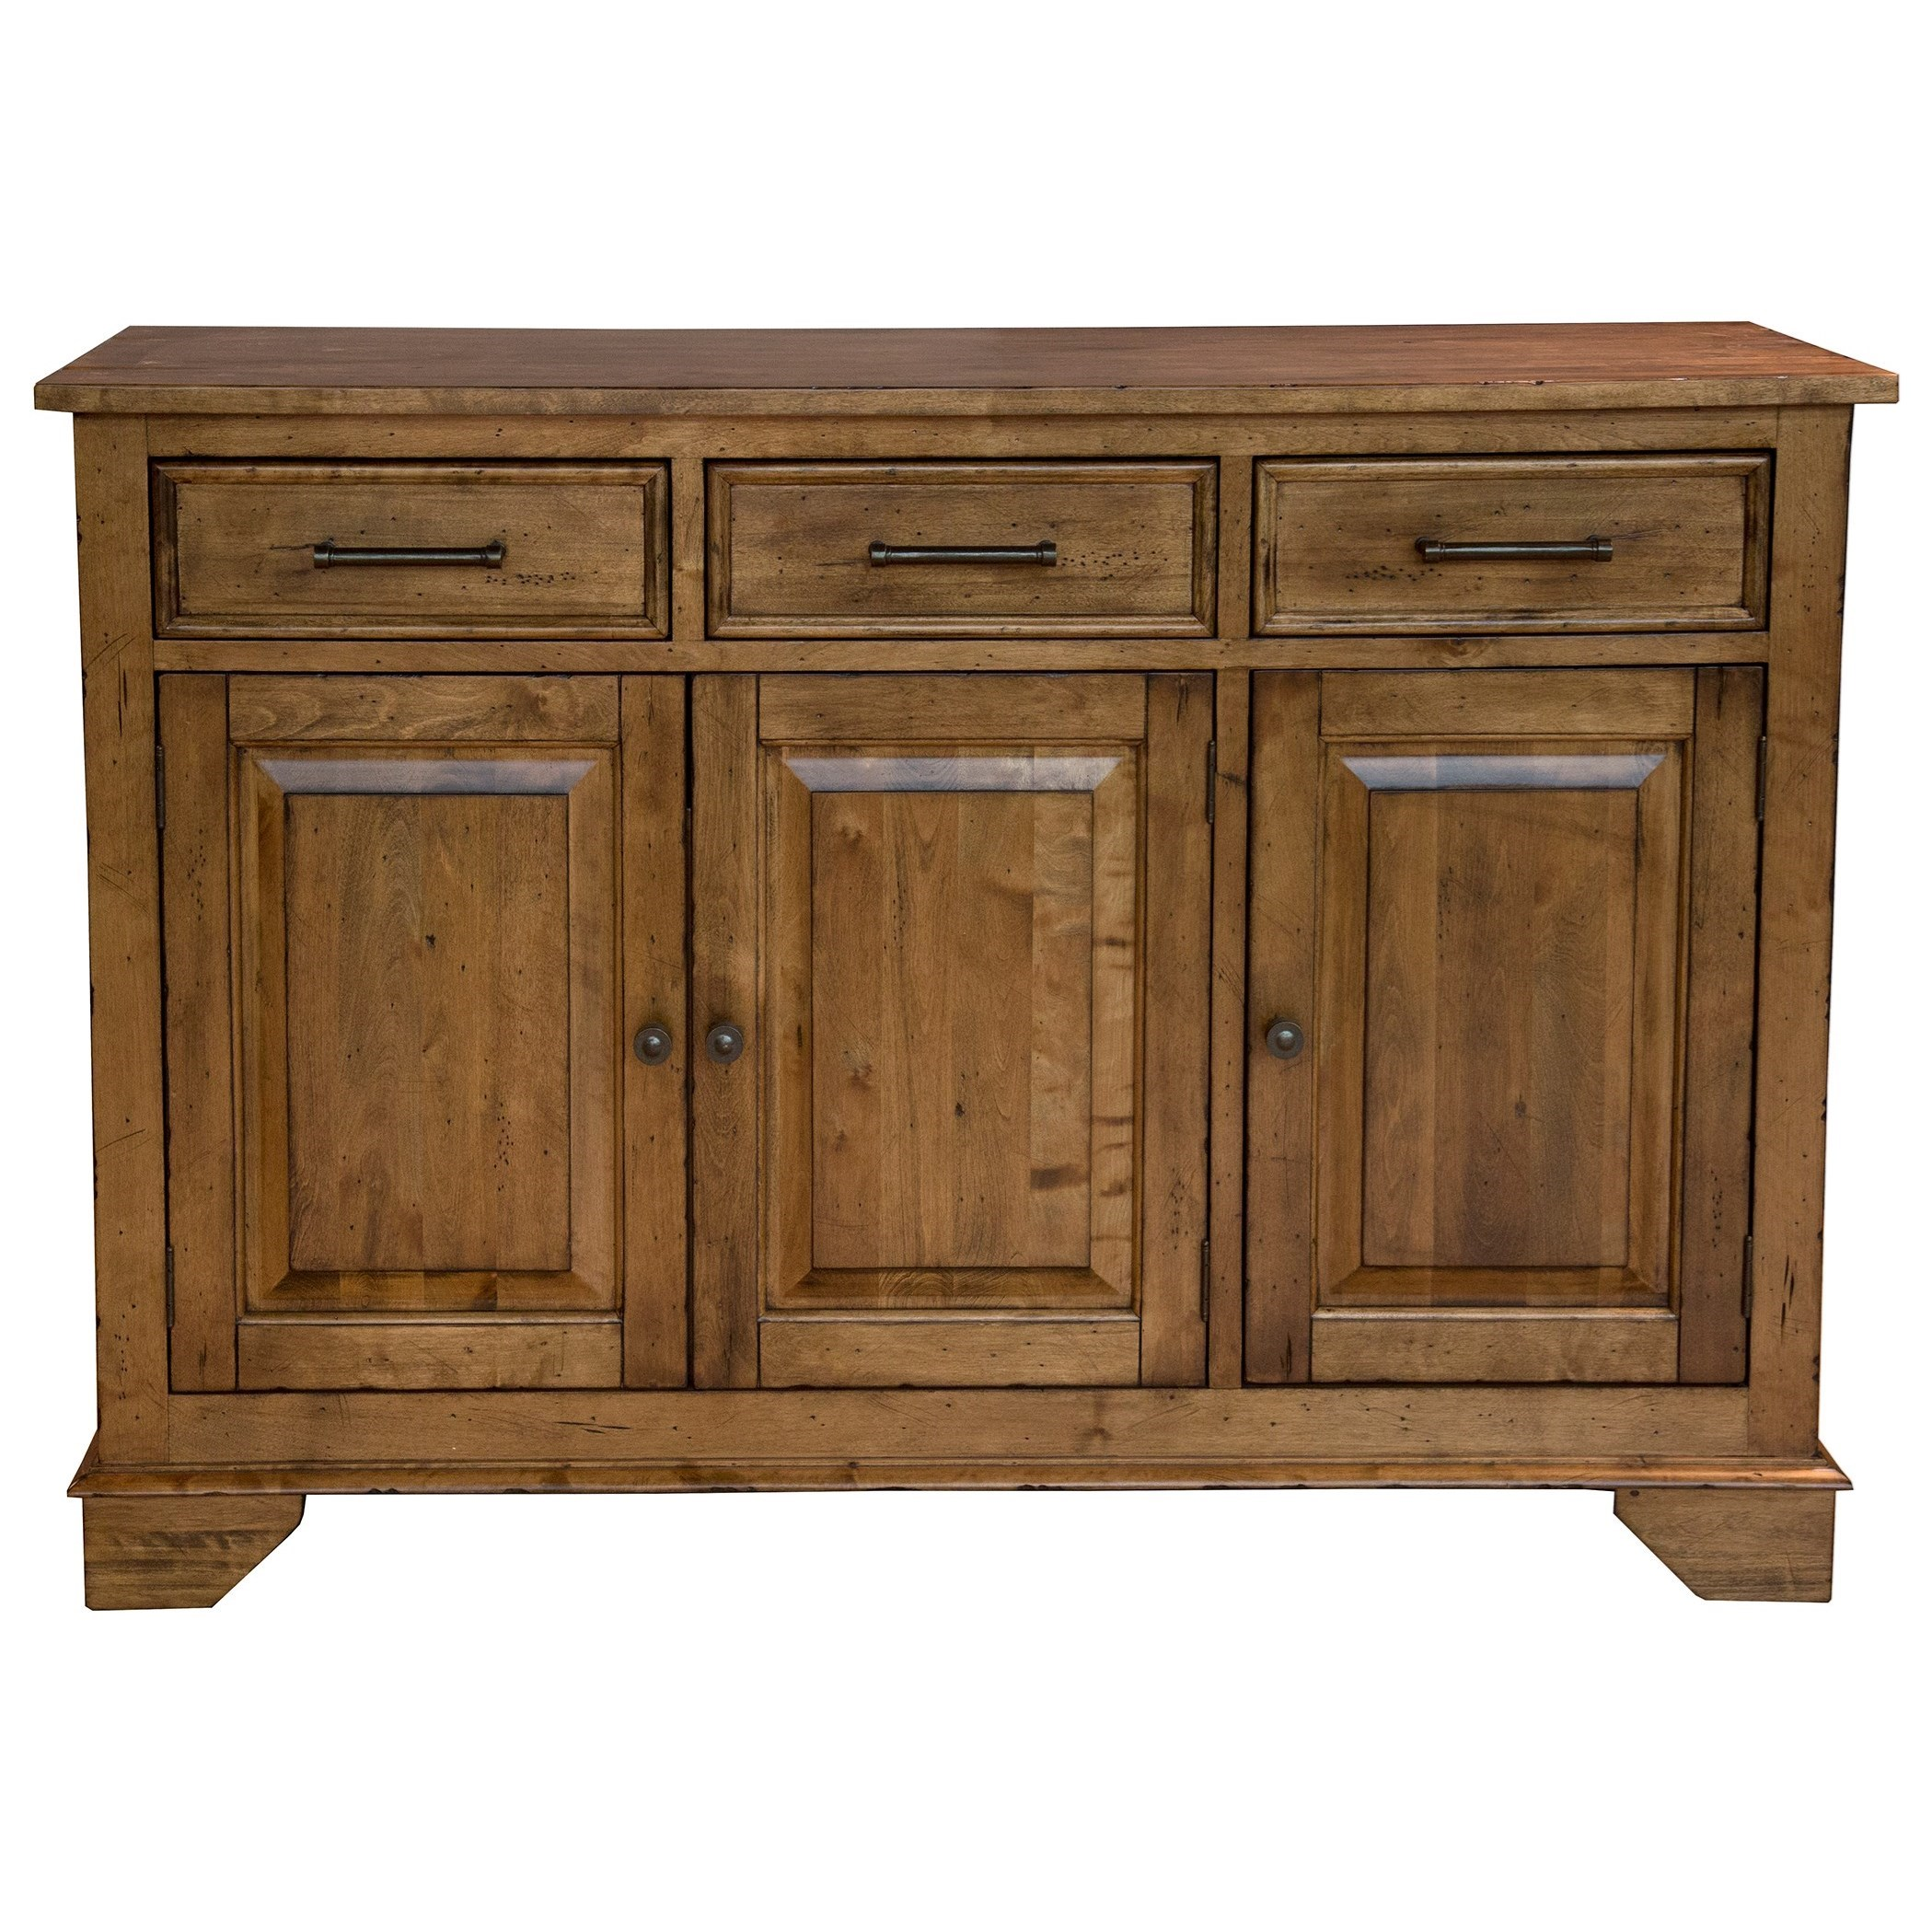 Bennett Dining Storage Server by A-A at Walker's Furniture